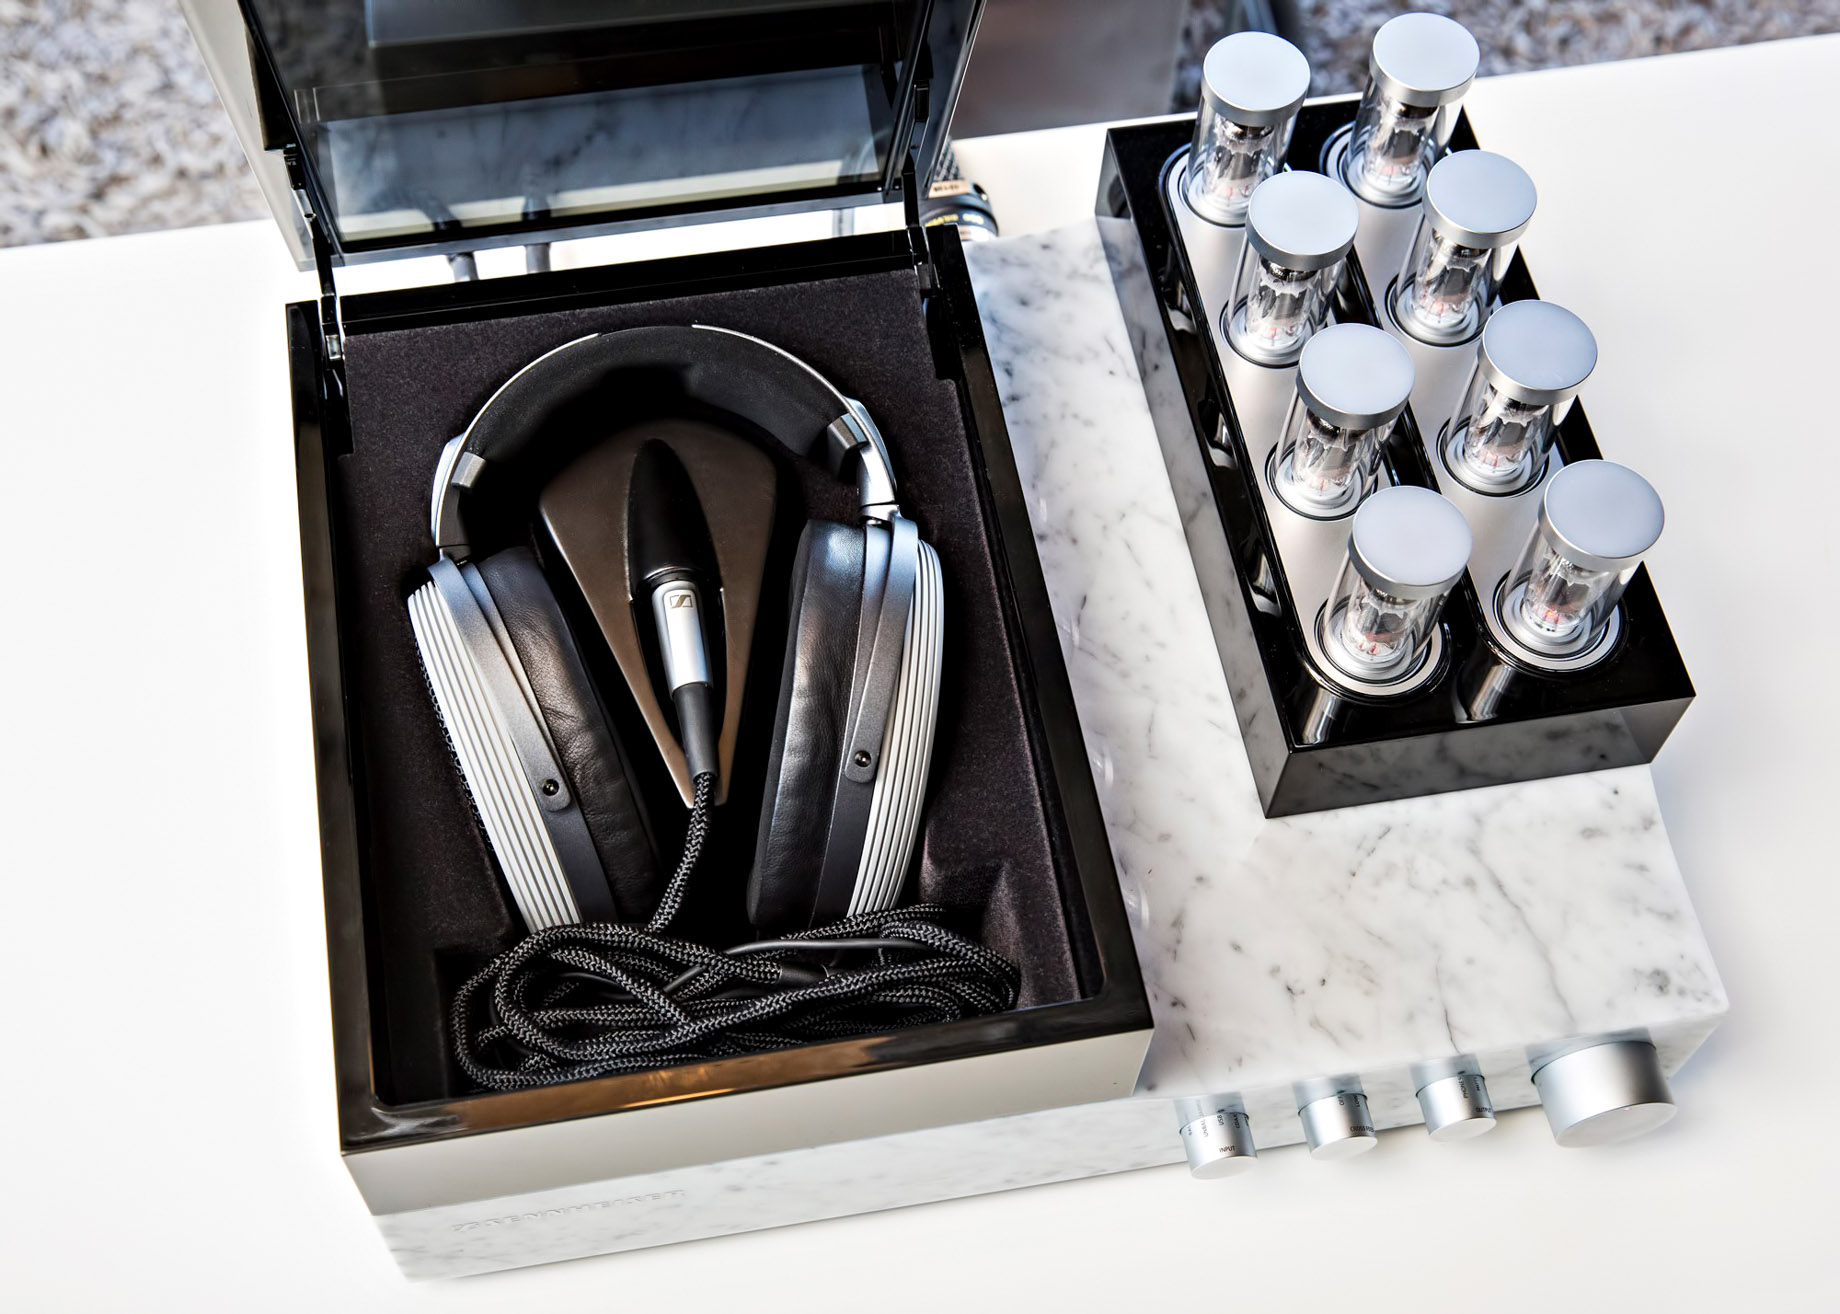 Sennheiser Orpheus Headphones – Dreaming Big – 6 Luxury Items You Could Purchase if Money Was No Object